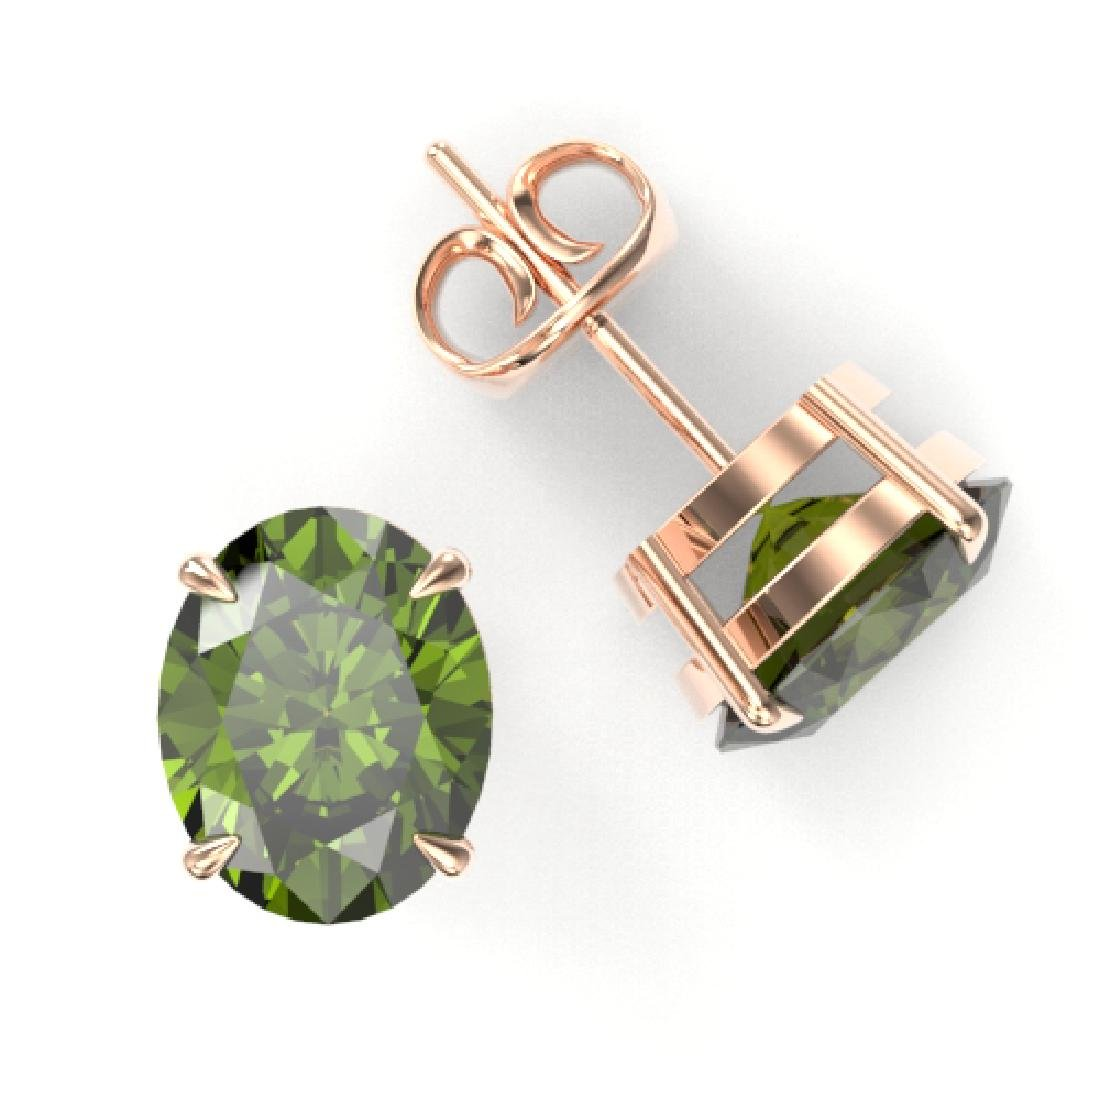 6 CTW Green Tourmaline Designer Solitaire Stud Earrings - 2